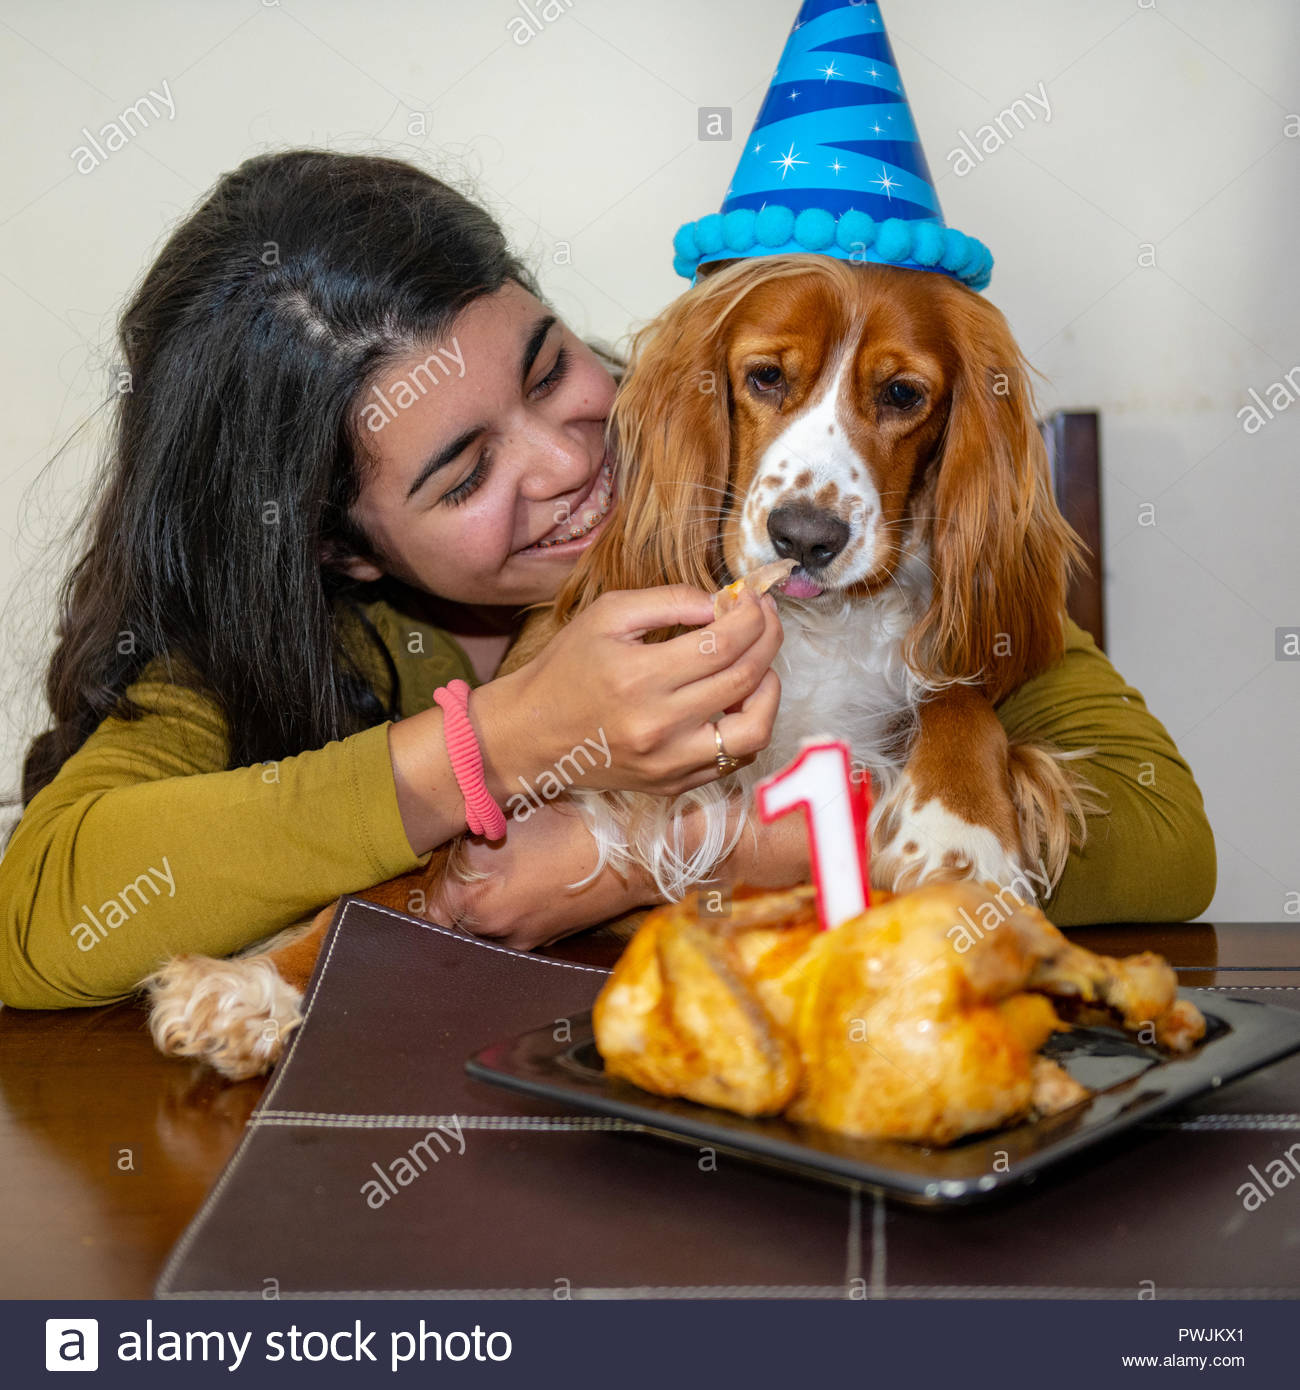 Young Adult Woman Celebrating The First Anniversary Of Her Cocker Spaniel Dog Pet Animal Has A Birthday Hat And Candle Over Roasted Chicken